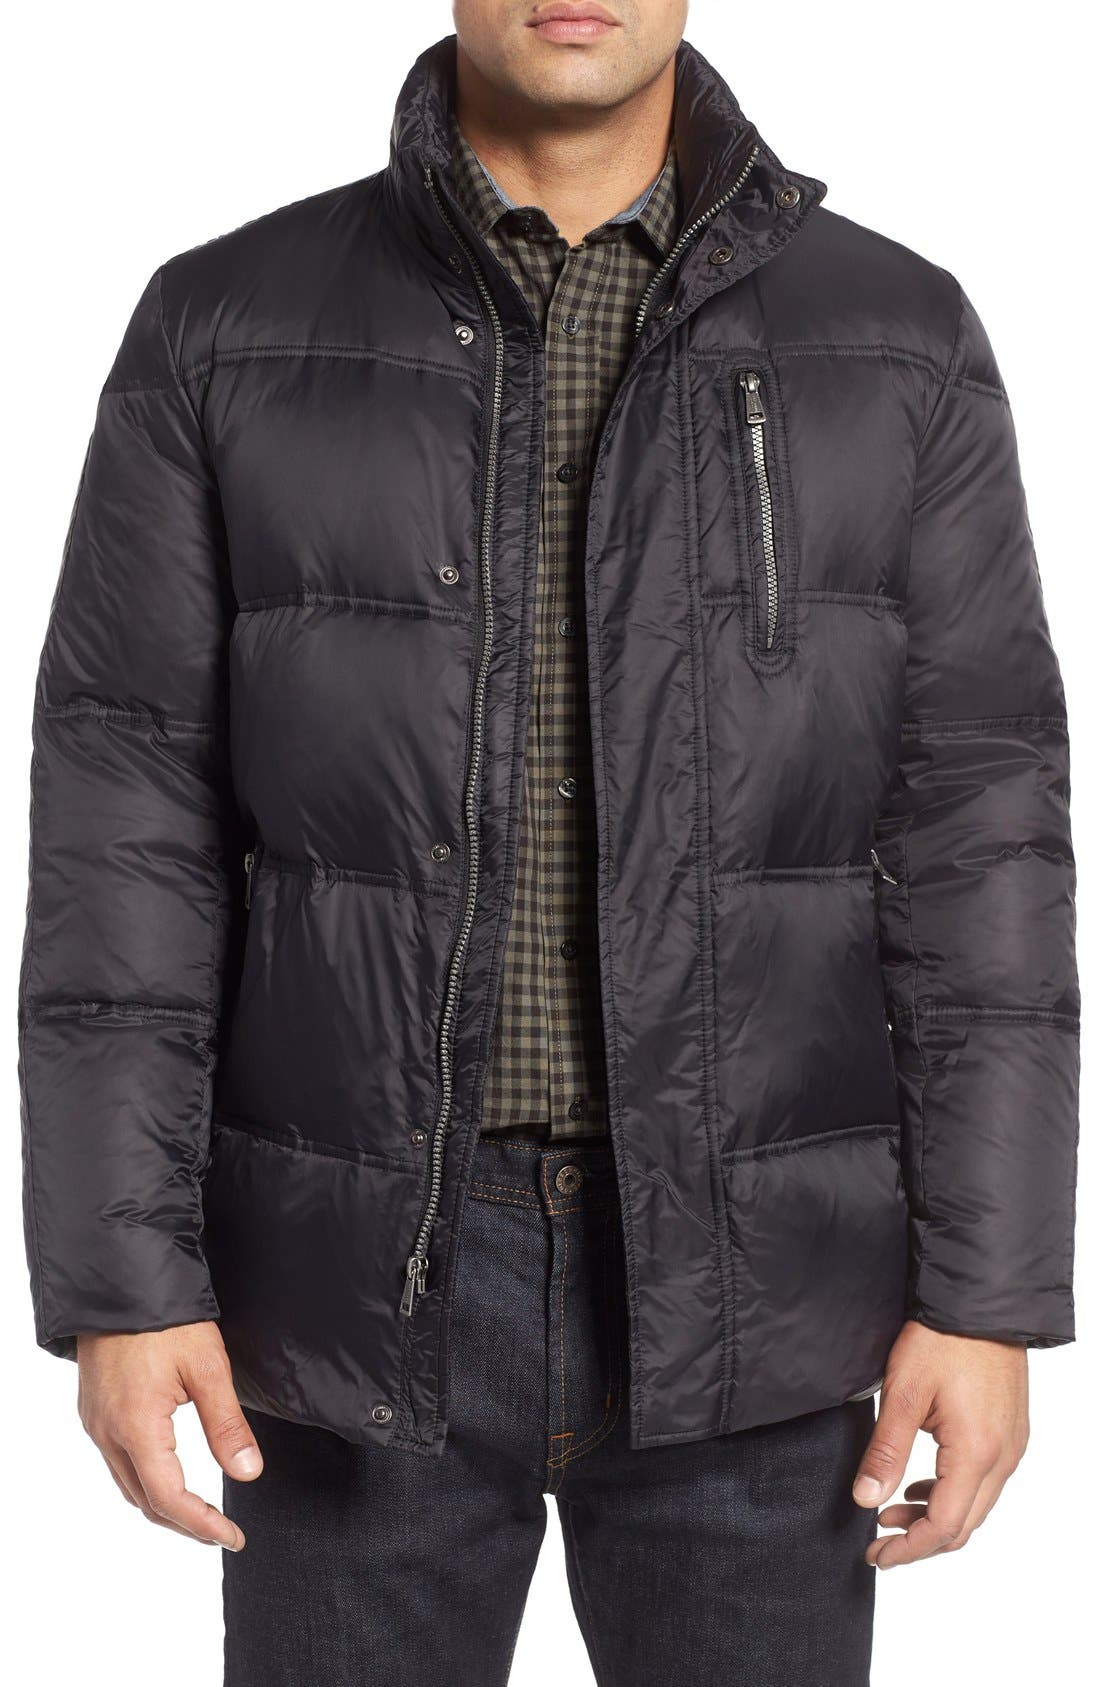 Quilted Jacket with Convertible Neck Pillow,                             Main thumbnail 2, color,